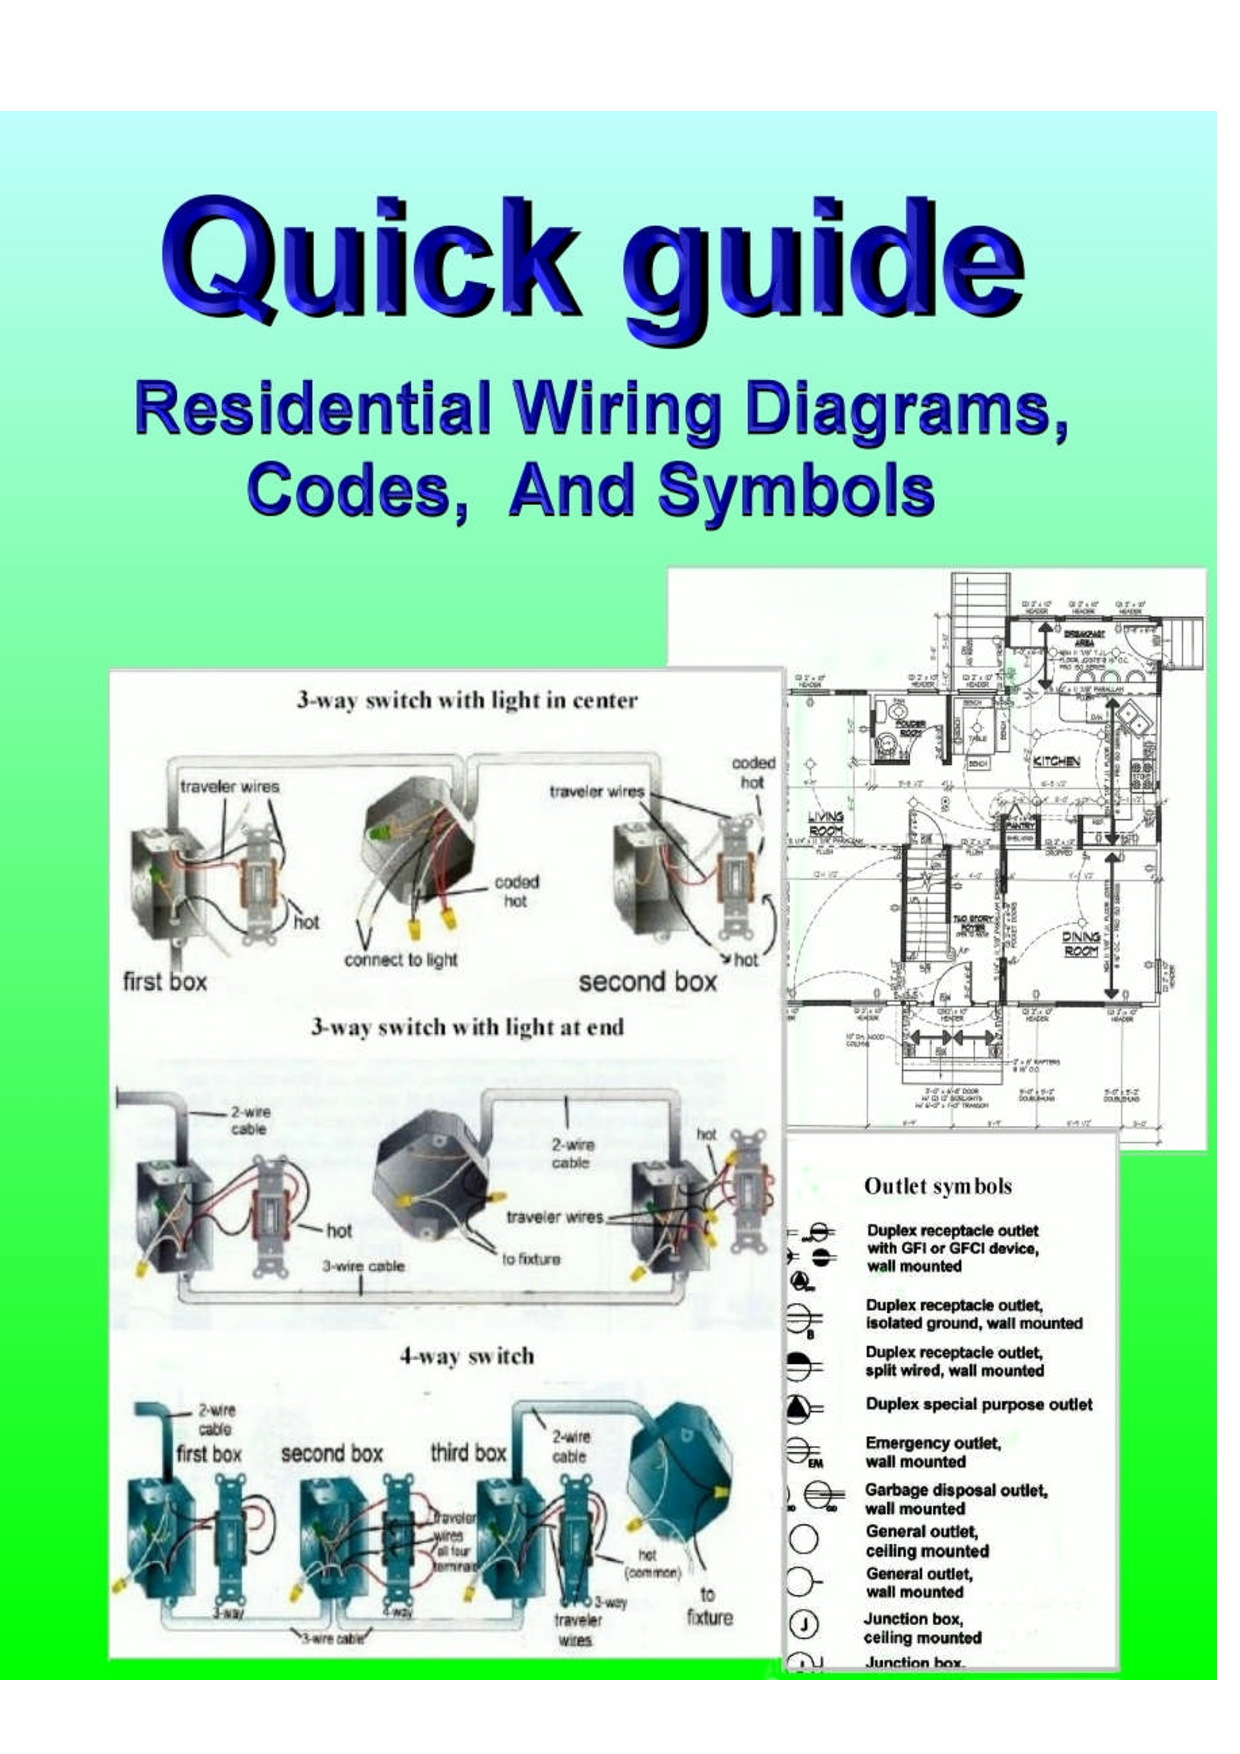 home electrical wiring diagrams pdf download legal documents 39 pages with many diagrams and illustrations a step by step home wiring guide with diagrams  [ 1240 x 1754 Pixel ]